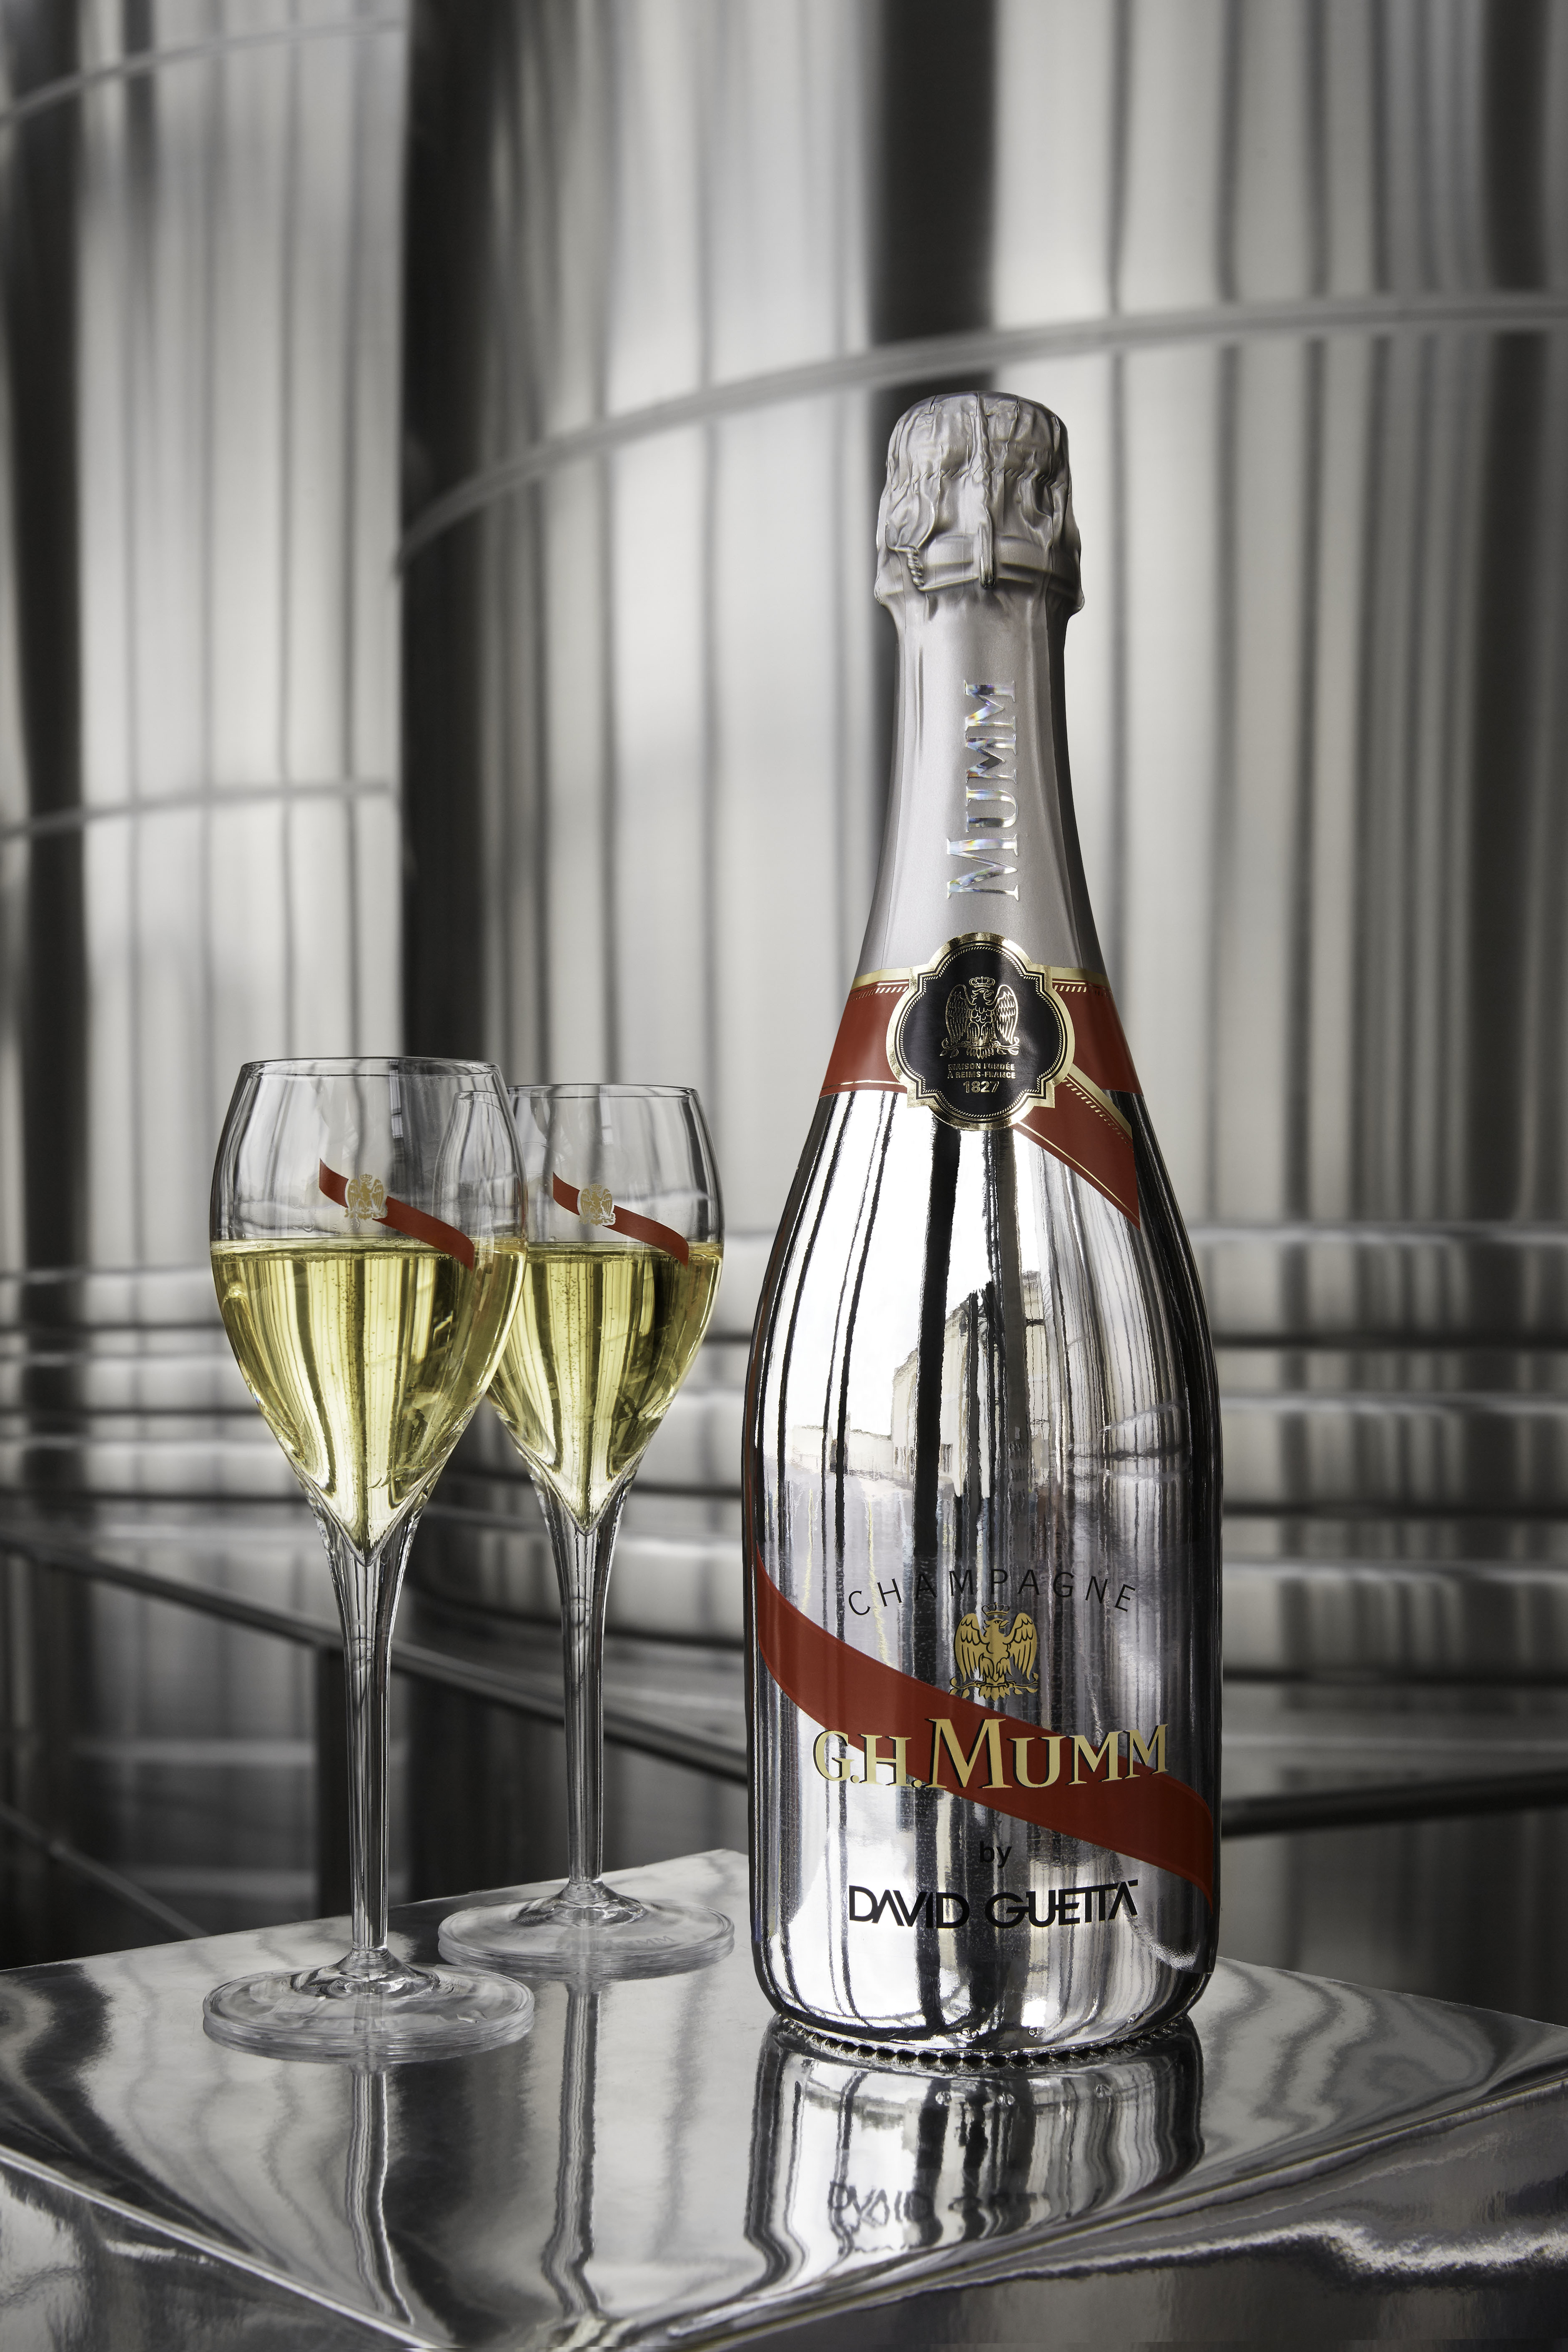 CHAMPAGNE MUMM LIMITED EDITION  BY DAVID GUETTA  WITH TWO FLUTES